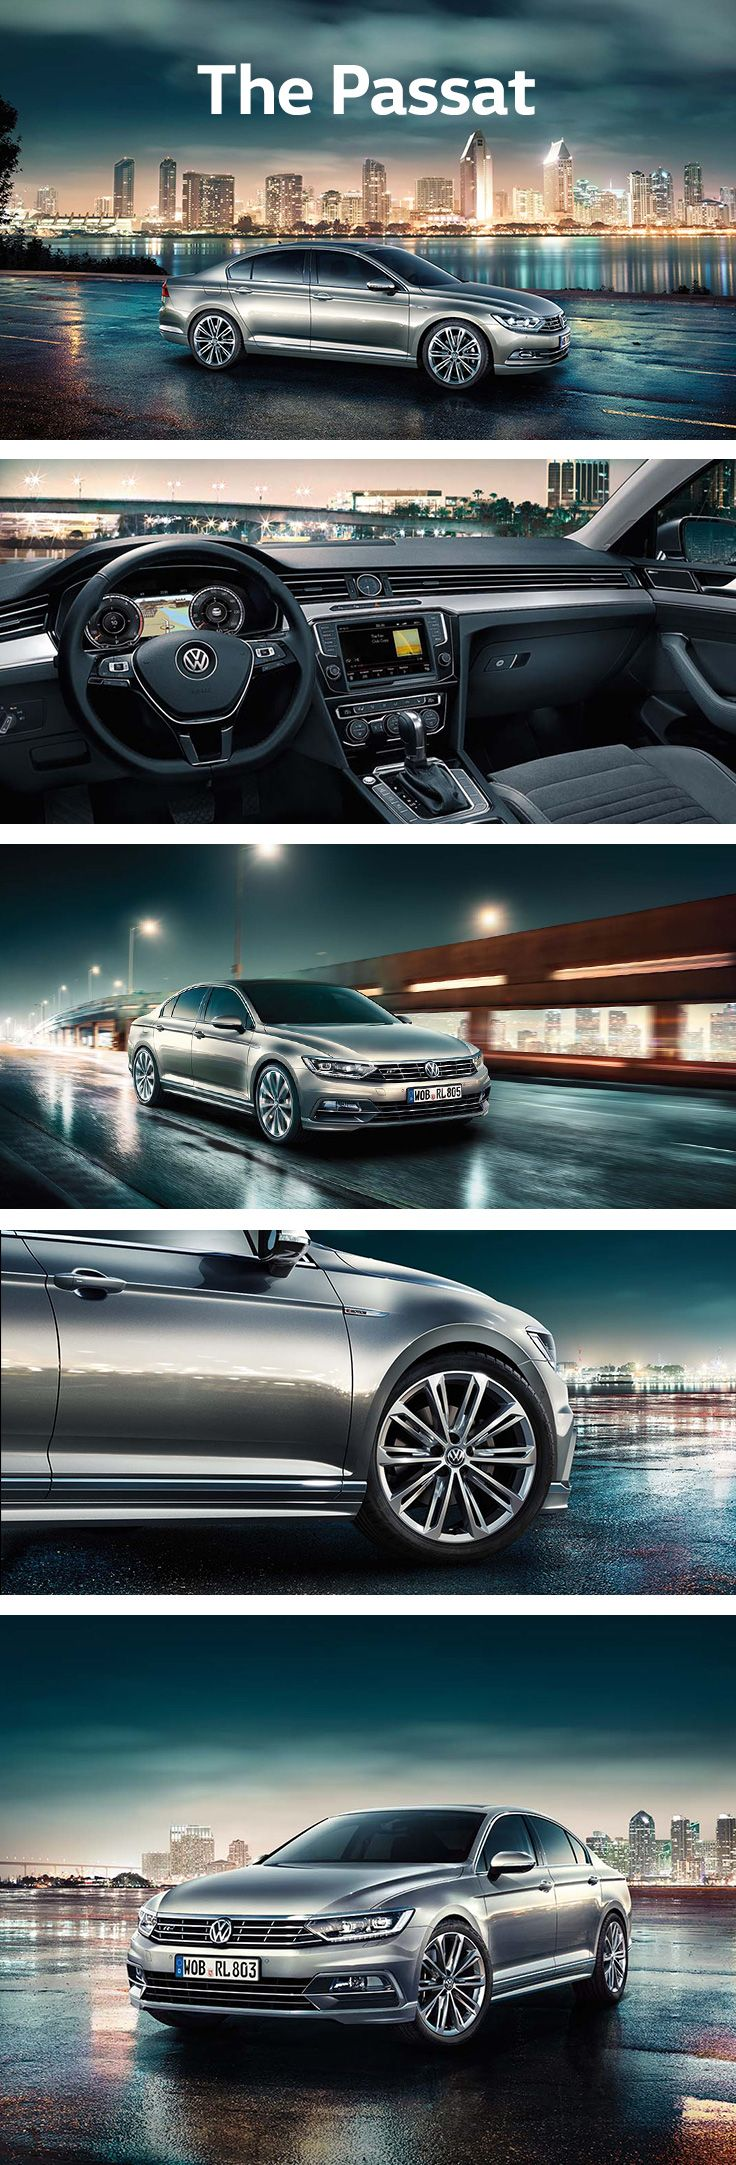 The new Passat is ideal for both family and business, as it offers a lot of space and numerous optional state-of-the-art assistance systems. Clear lines and high-quality materials, an extended wheelbase, chrome radiator grille and more lend the Volkswagen Passat stylish elegance. With the optional Active Info Display, the instrument cluster comes with a choice of various profiles to provide customised information in the driver's direct field of vision.